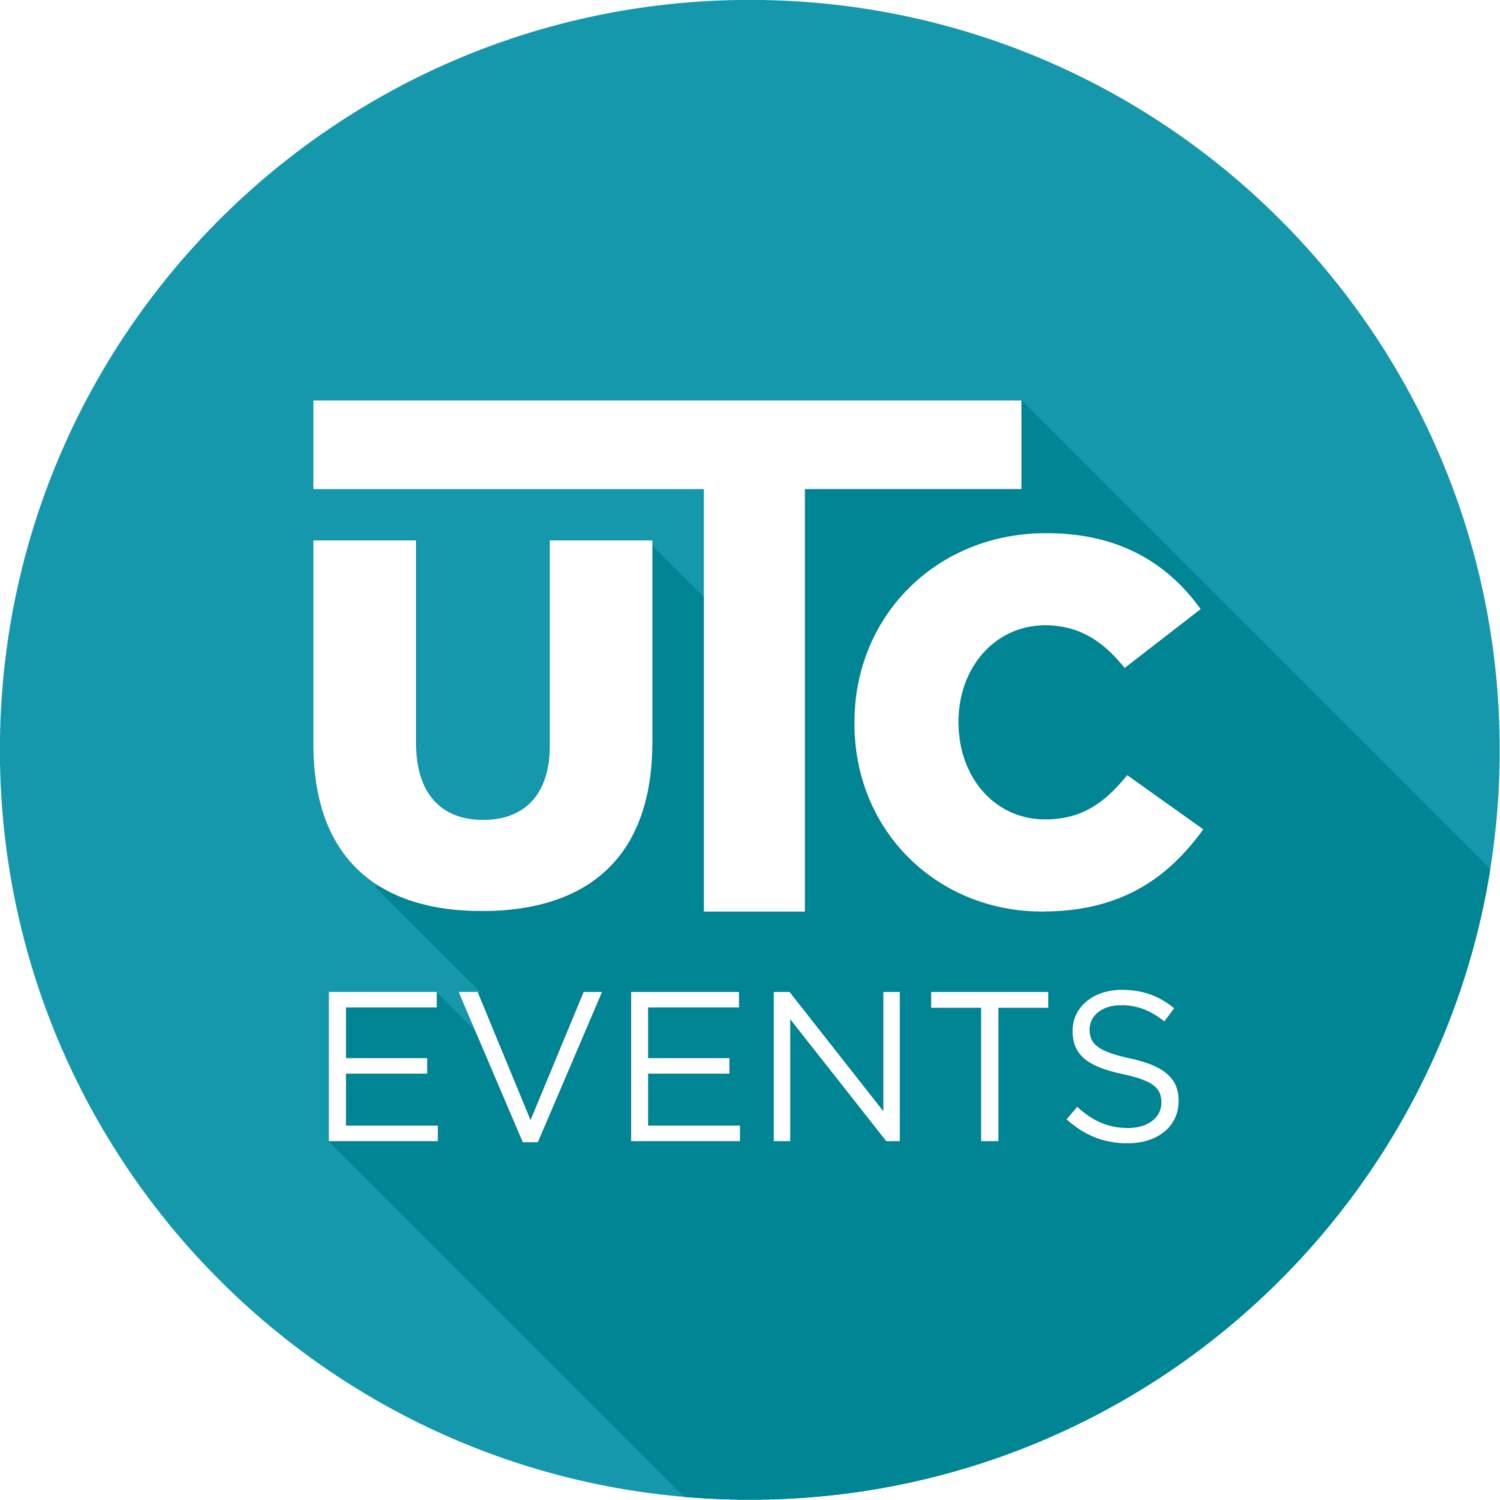 UTC Events